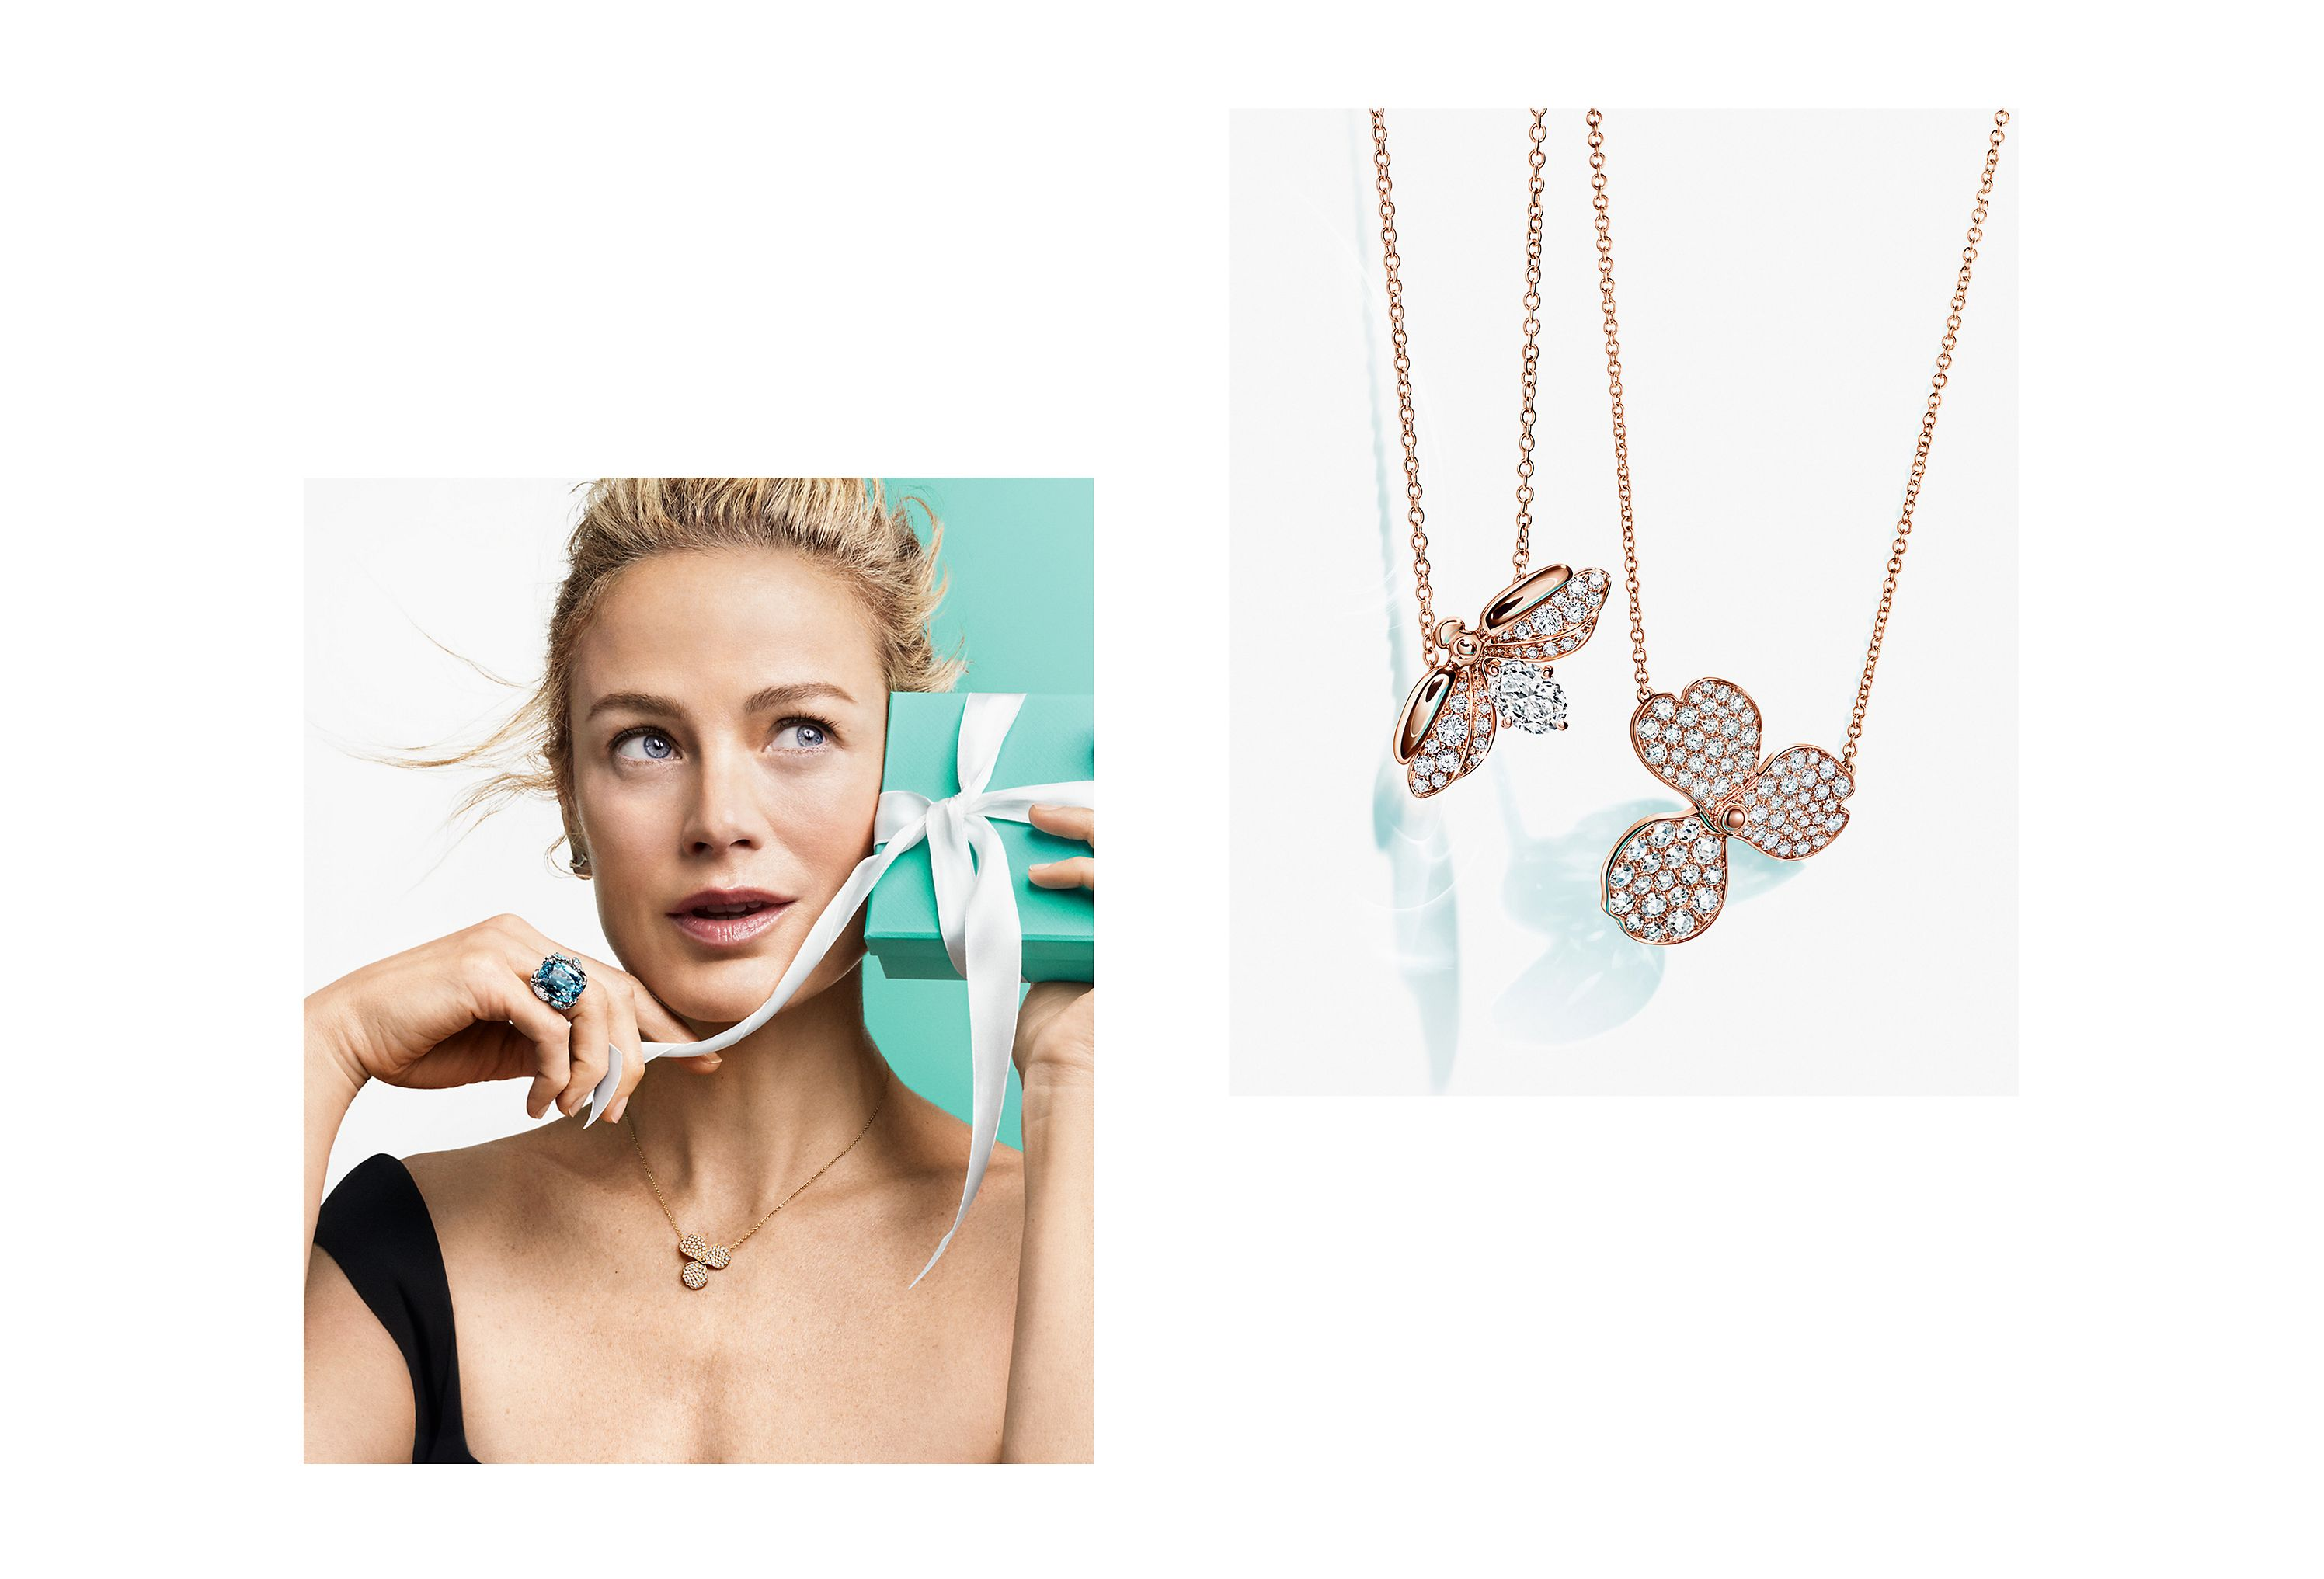 c6900313135 Tiffany & Co. Official | Luxury Jewelry, Gifts & Accessories Since 1837